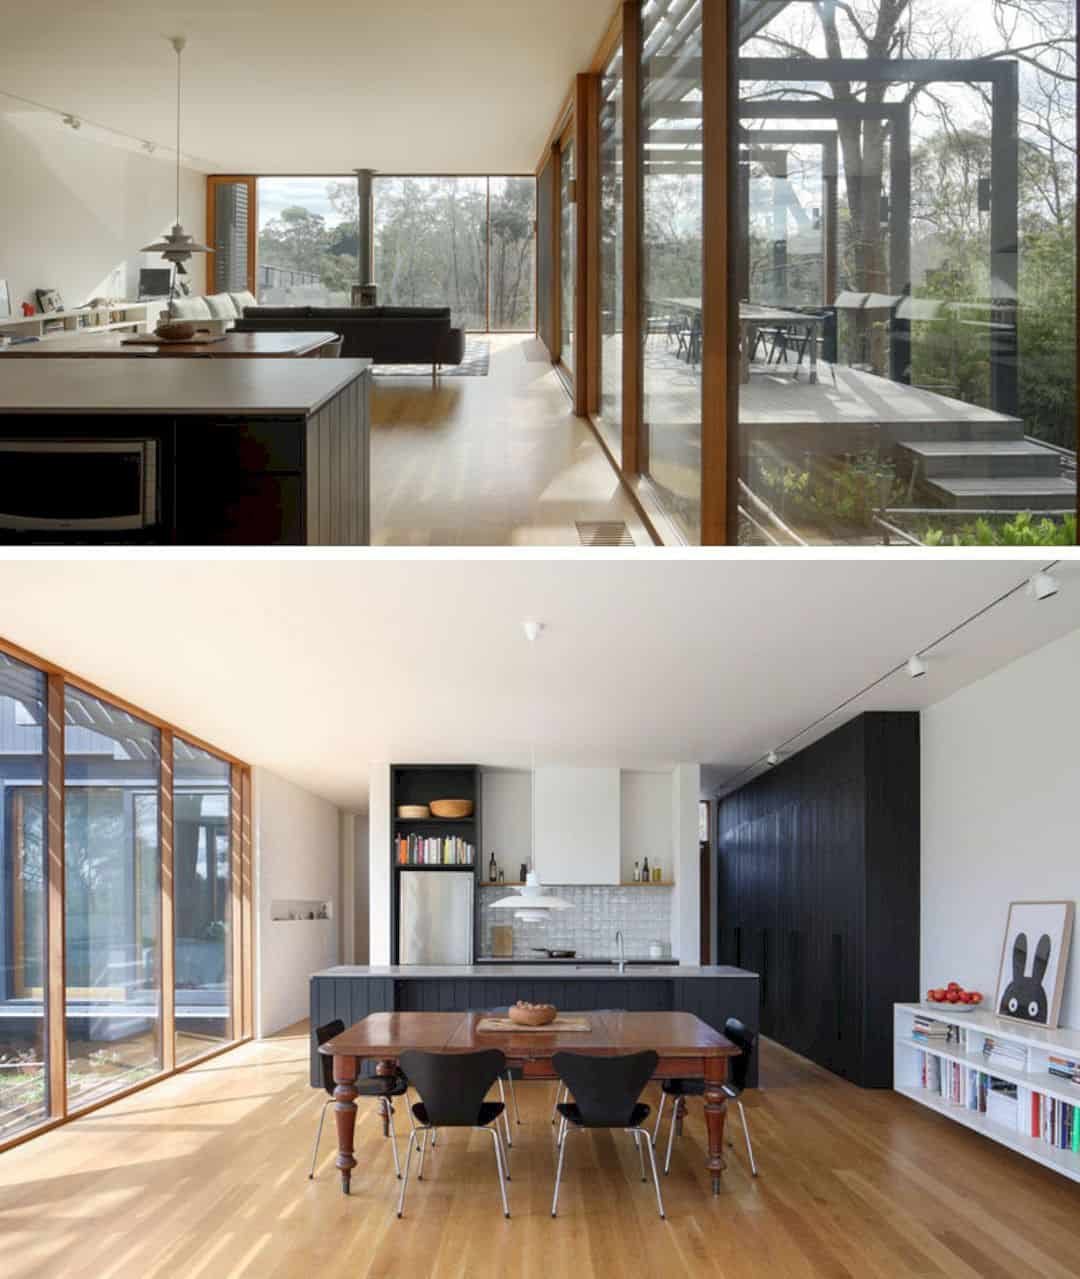 Kitchen Design Melbourne: A Black Wood Extension For A Victorian House In Melbourne